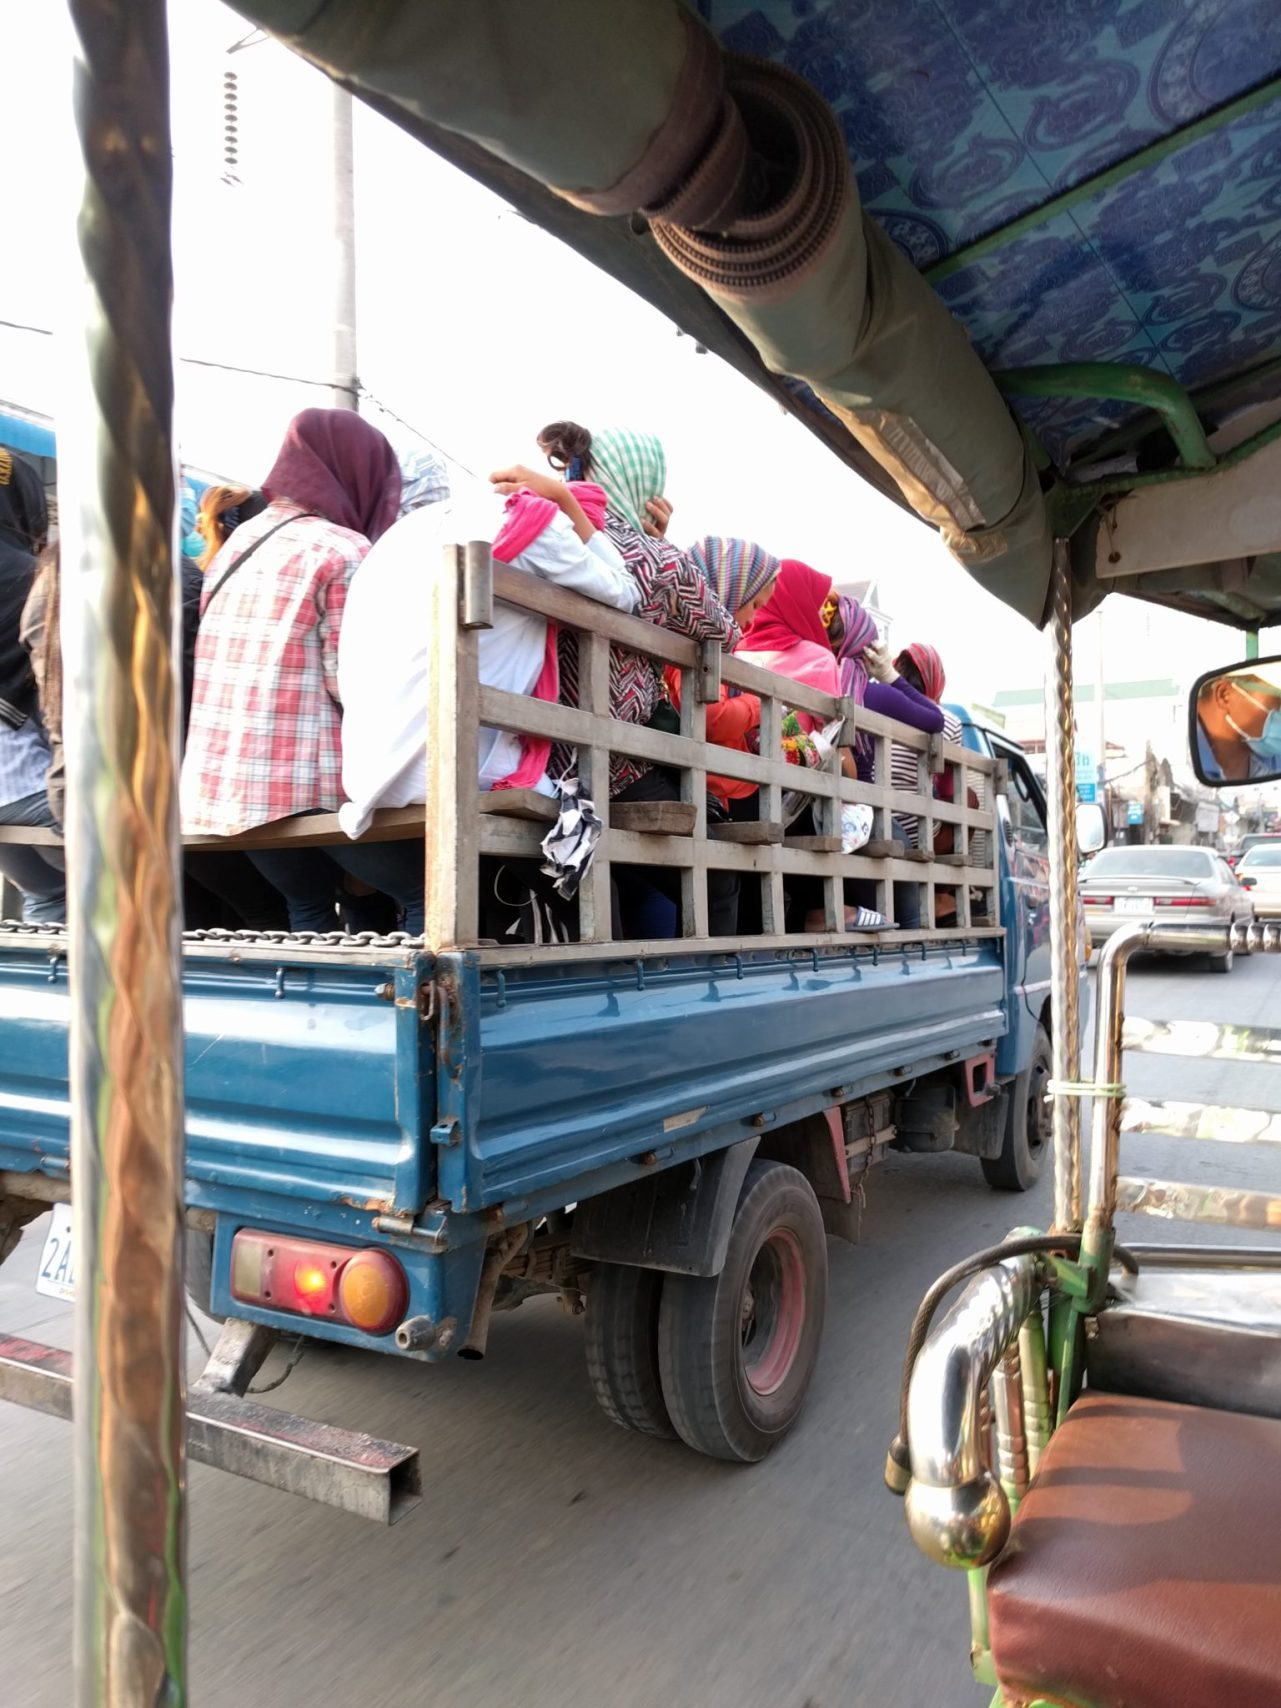 Camion/bus in Cambogia